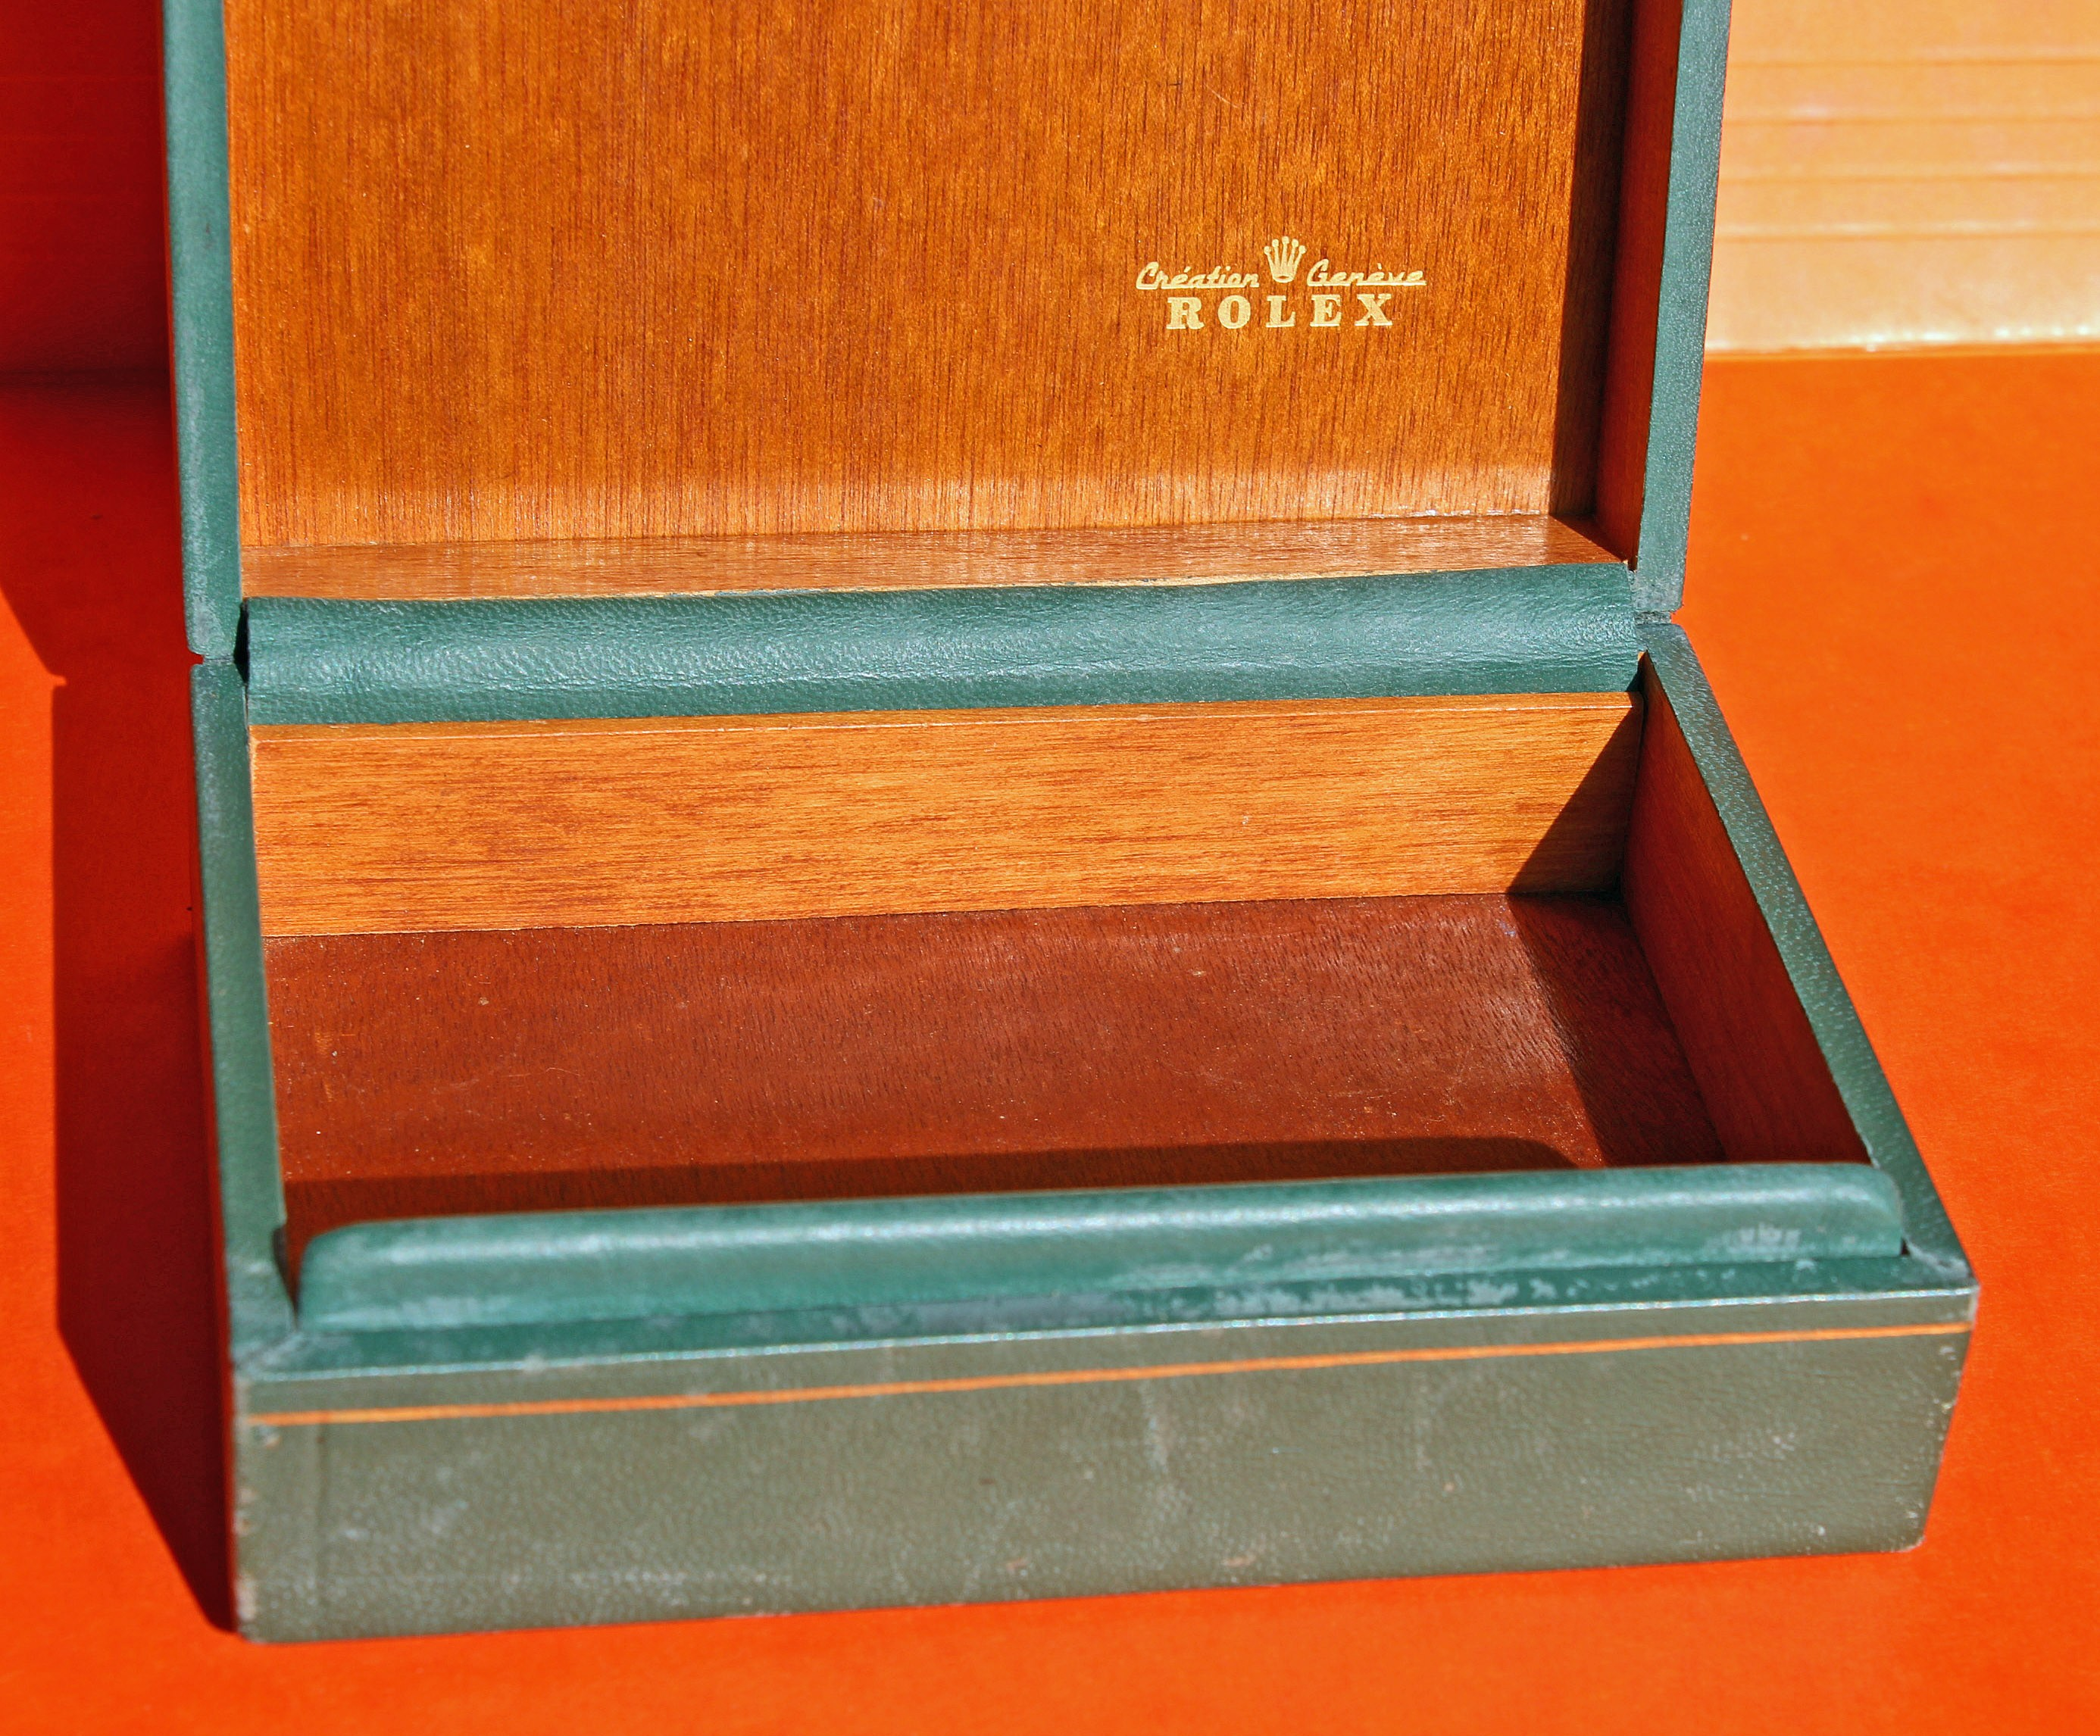 Rolex 70's Green Leather Watch Box Storage 69.00.4 Datejust, Oyster perpetual, Precision, oyster perpetual date, air king